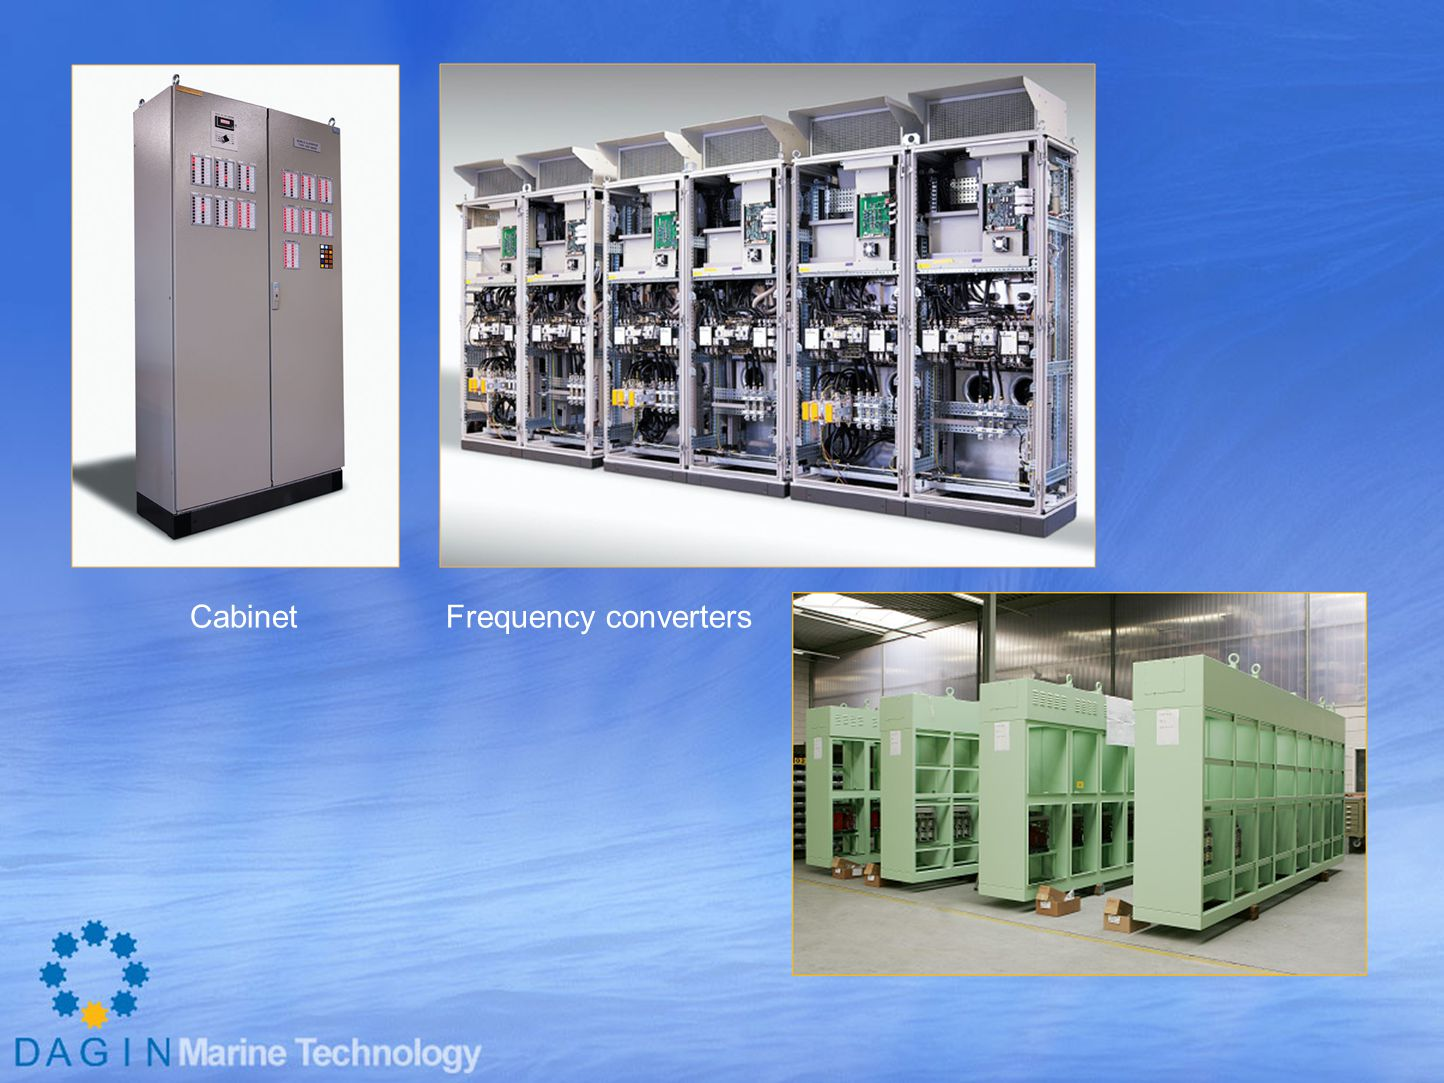 Cabinet Frequency converters